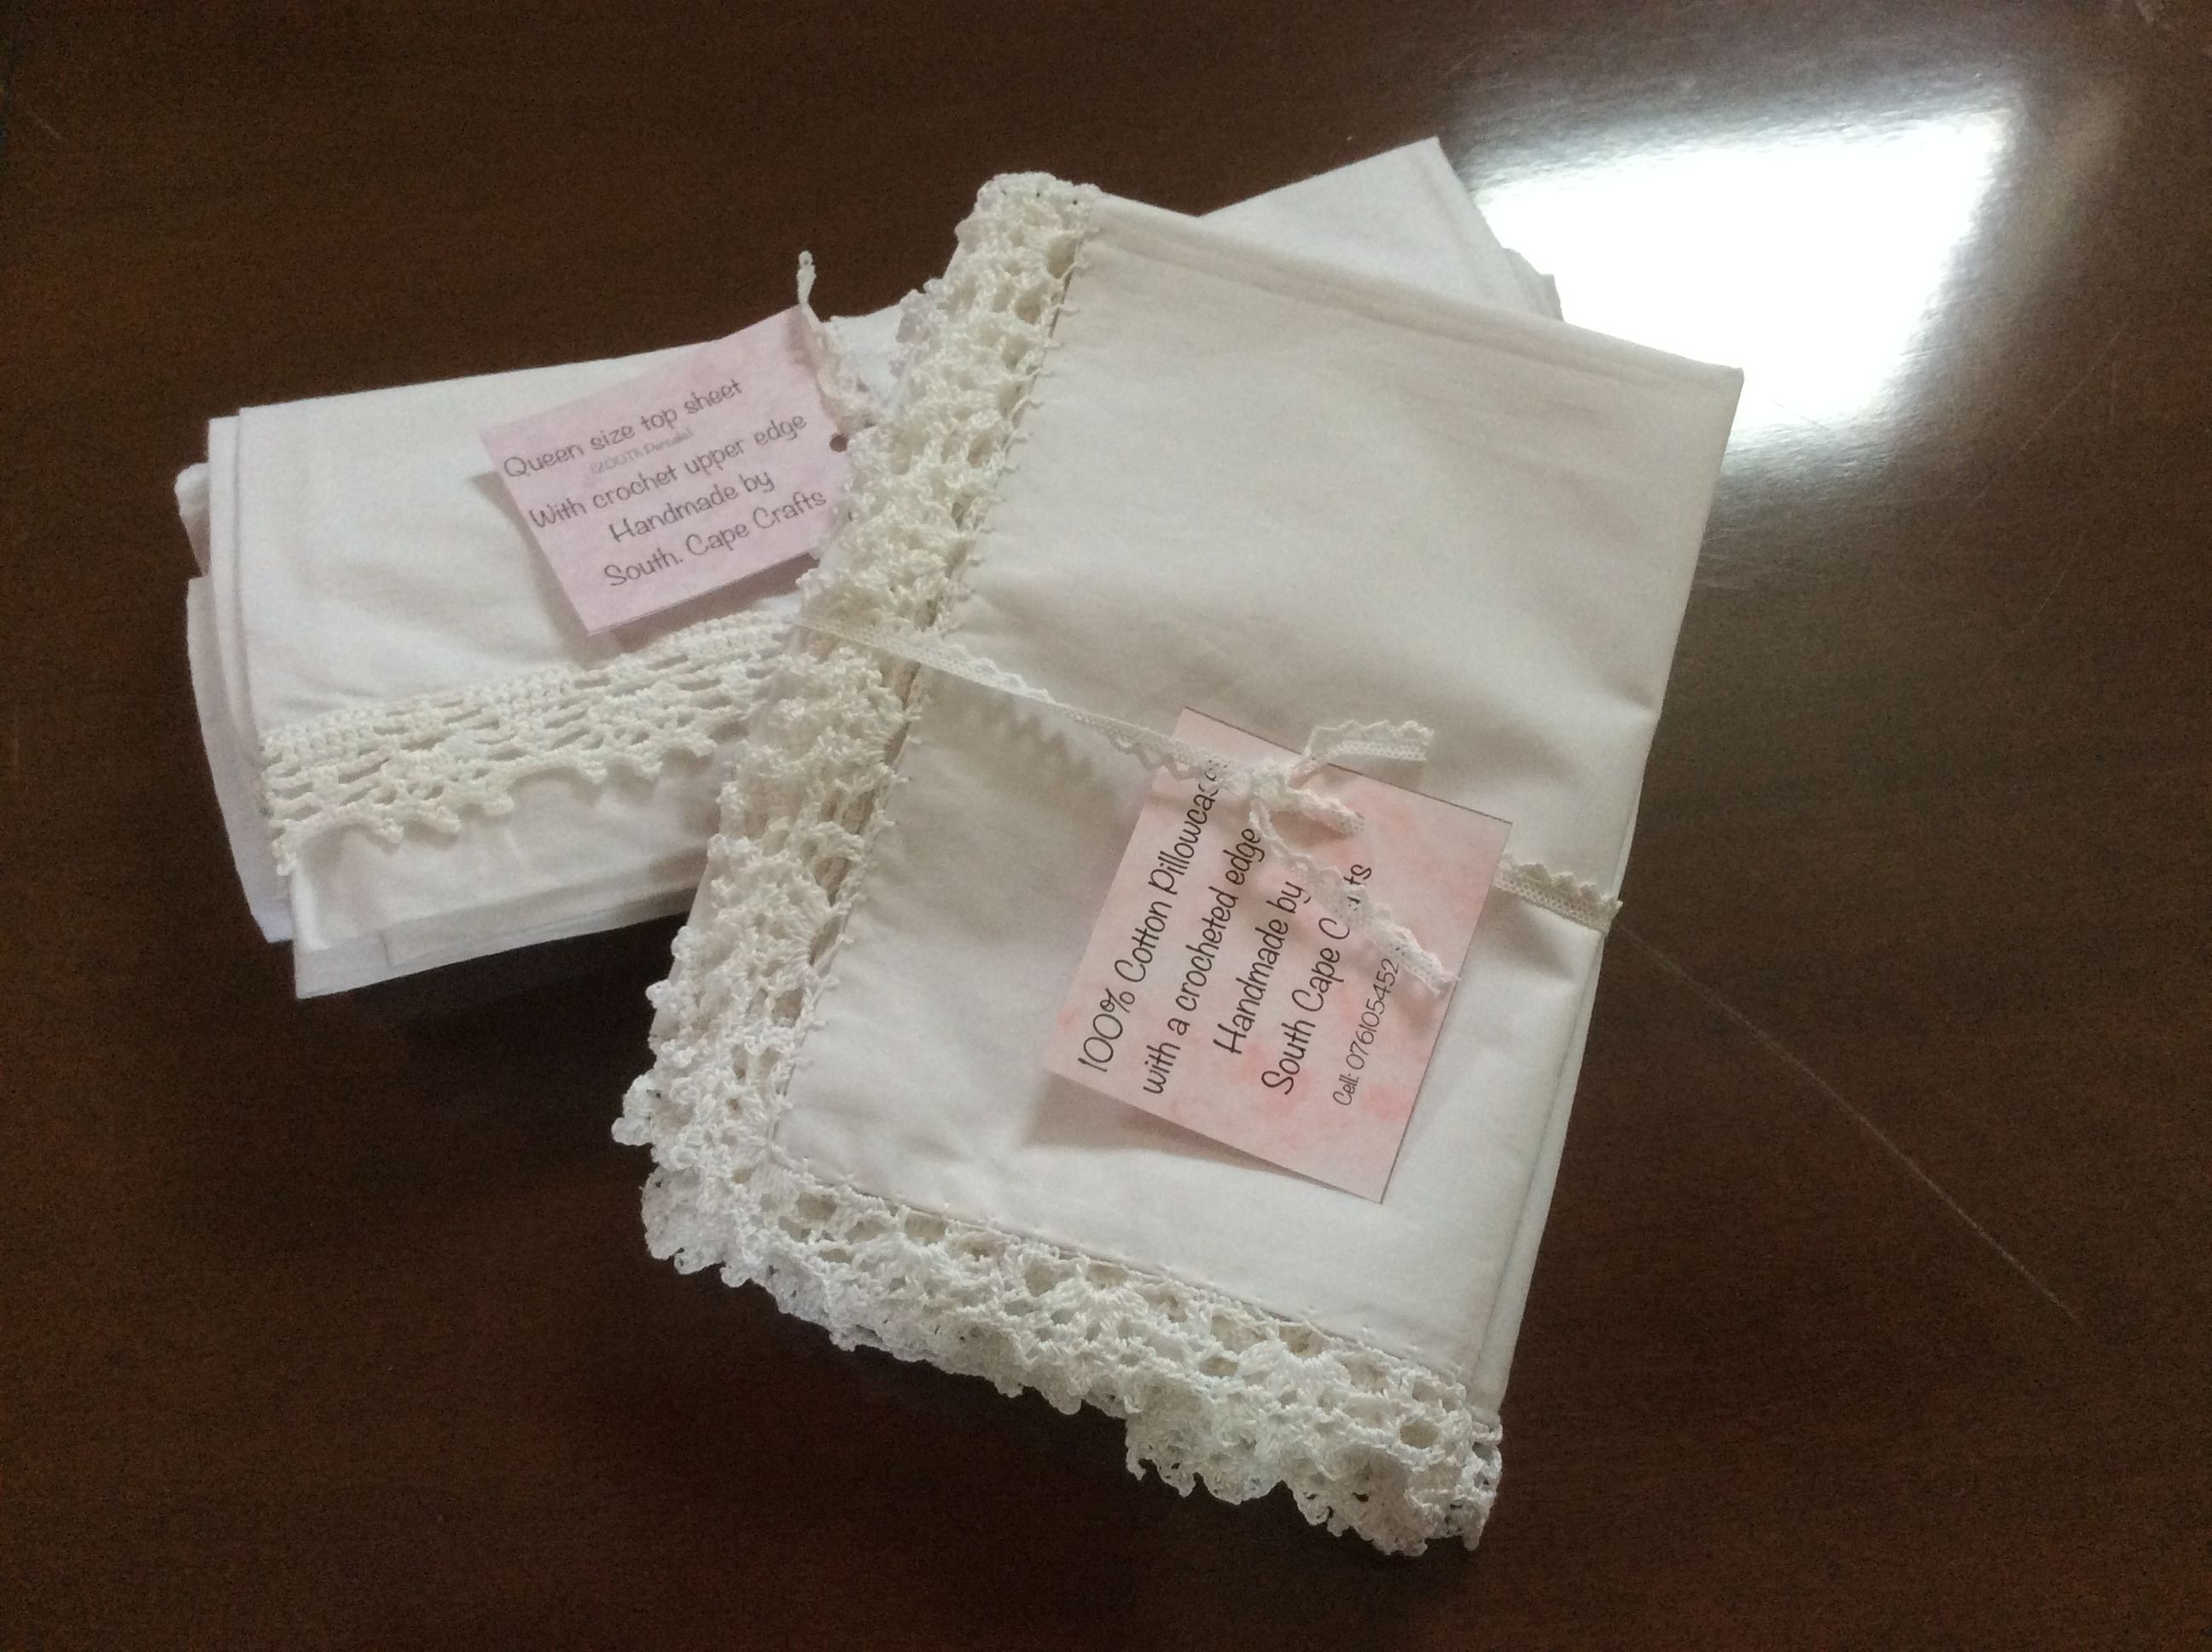 Cotton percale pillowcases and queen size top sheet with crochet details